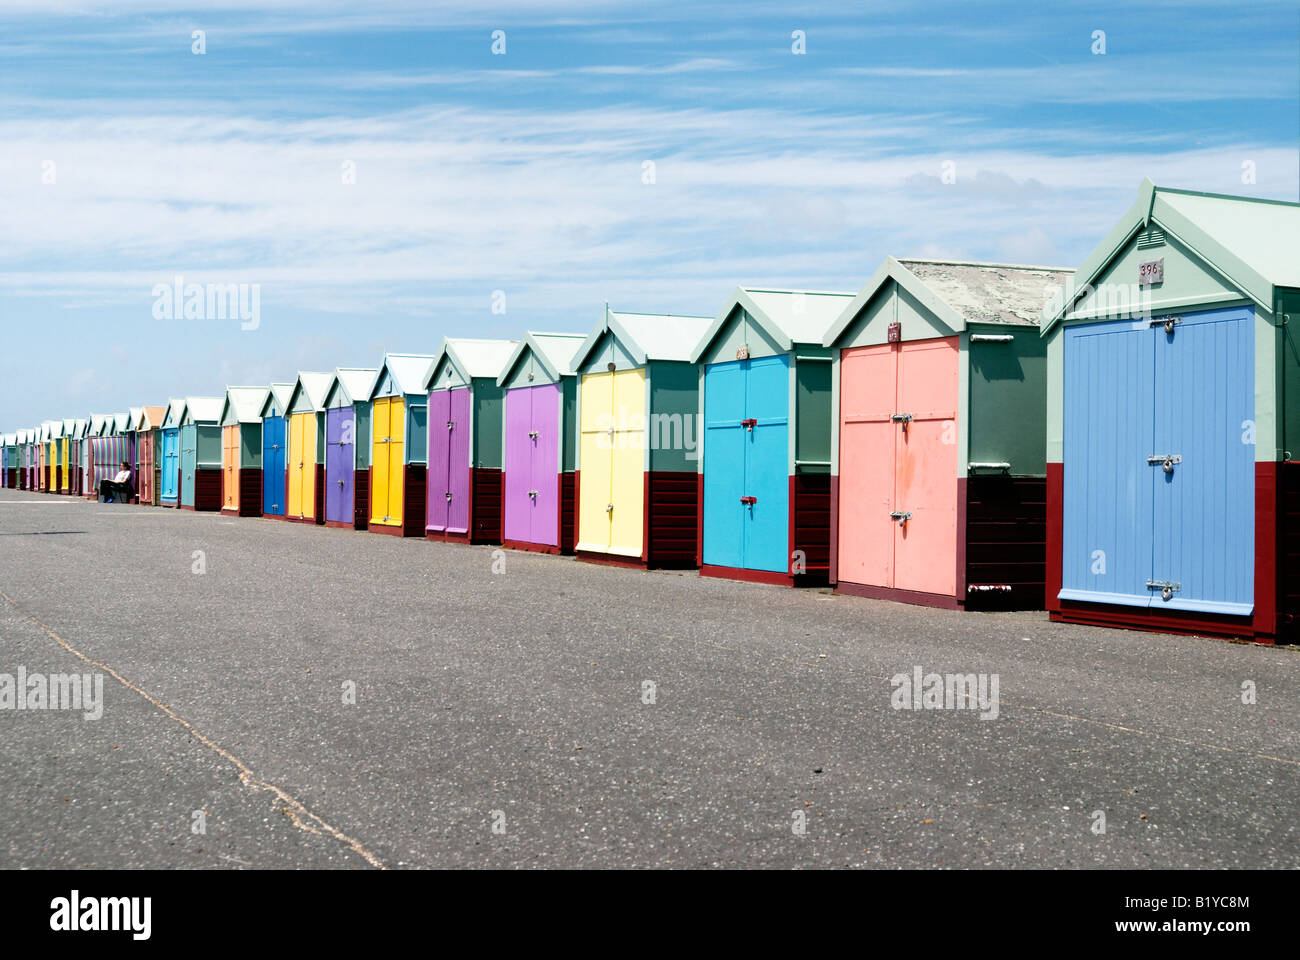 Woman sitting outside a row of colourful beachhuts on the seafront in Hove - Stock Image